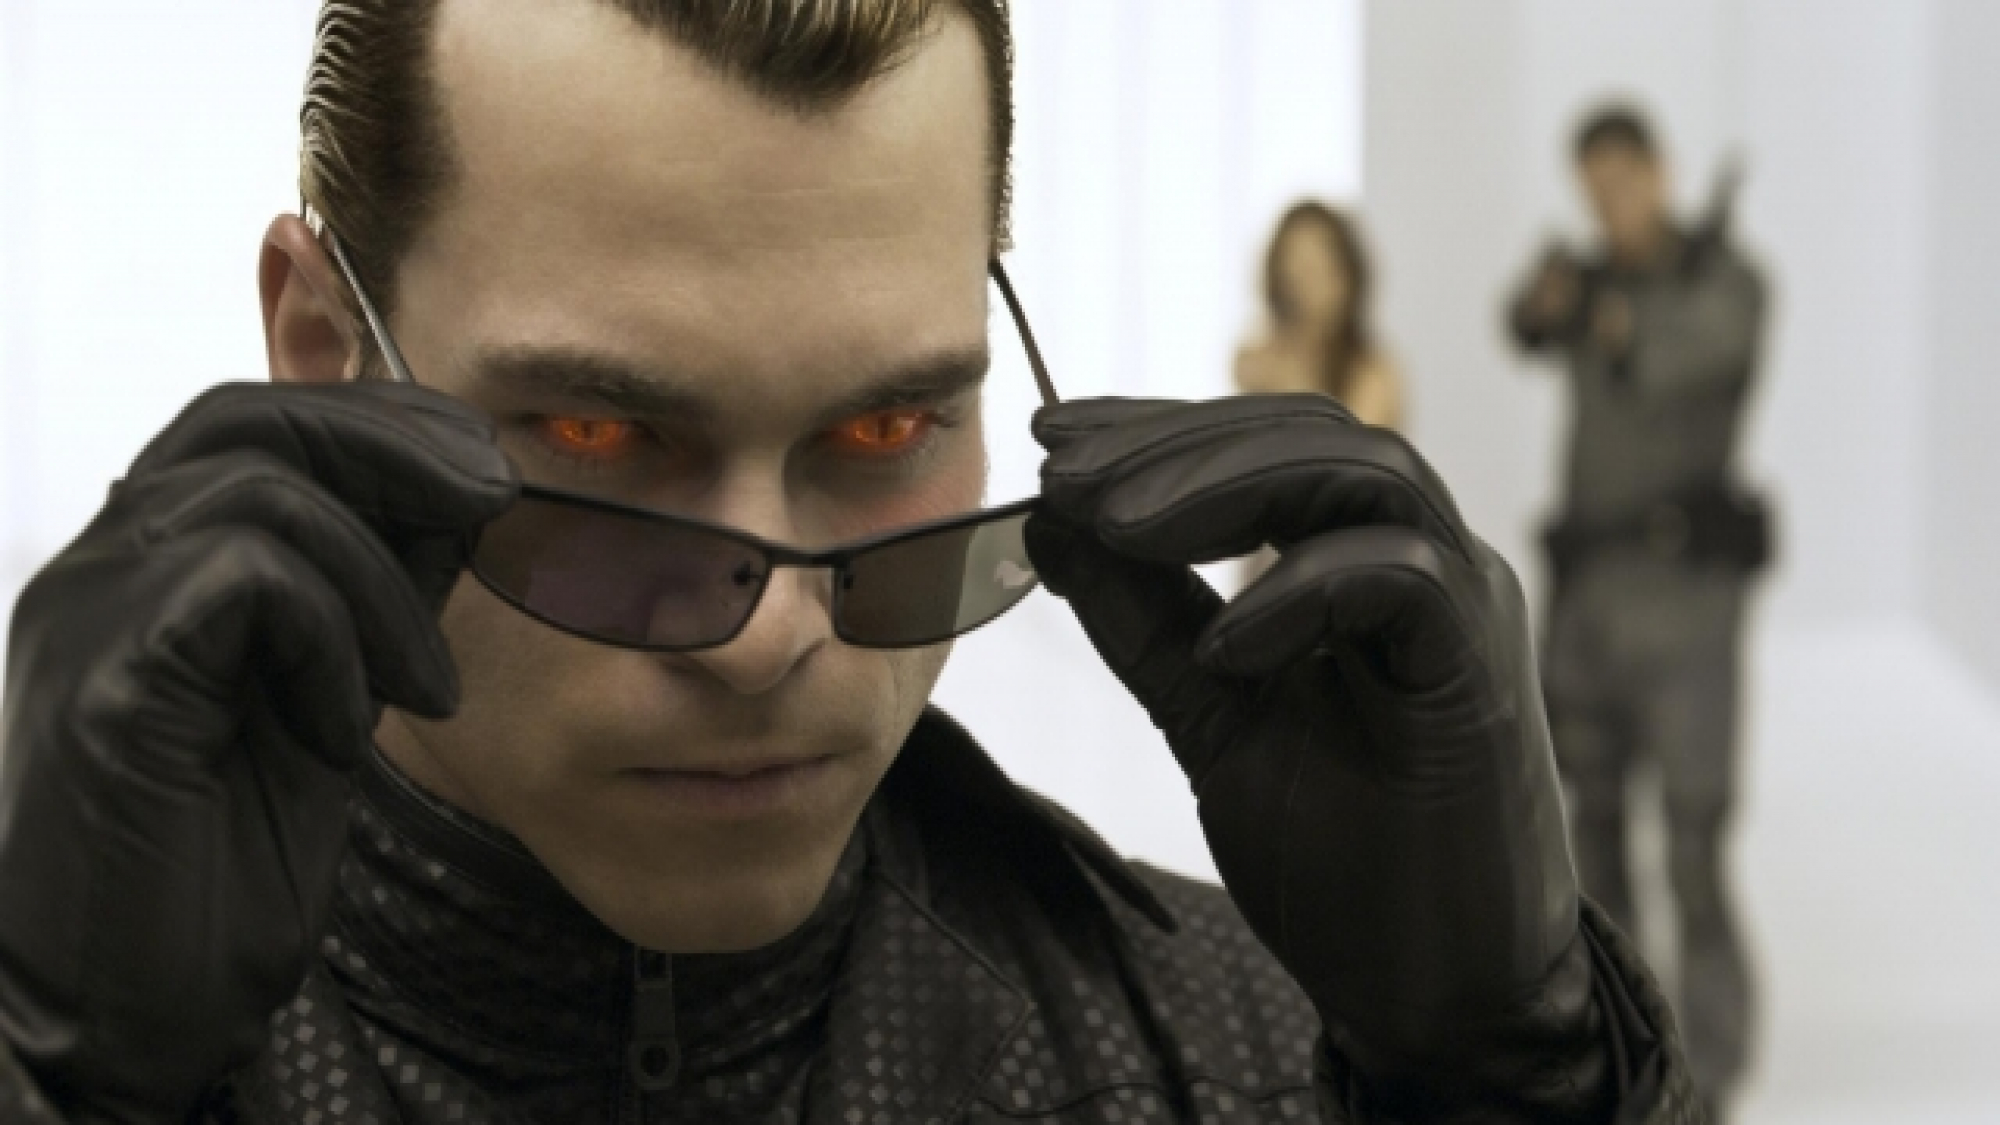 Castlevania Star Reportedly Eyed To Play Wesker In Resident Evil